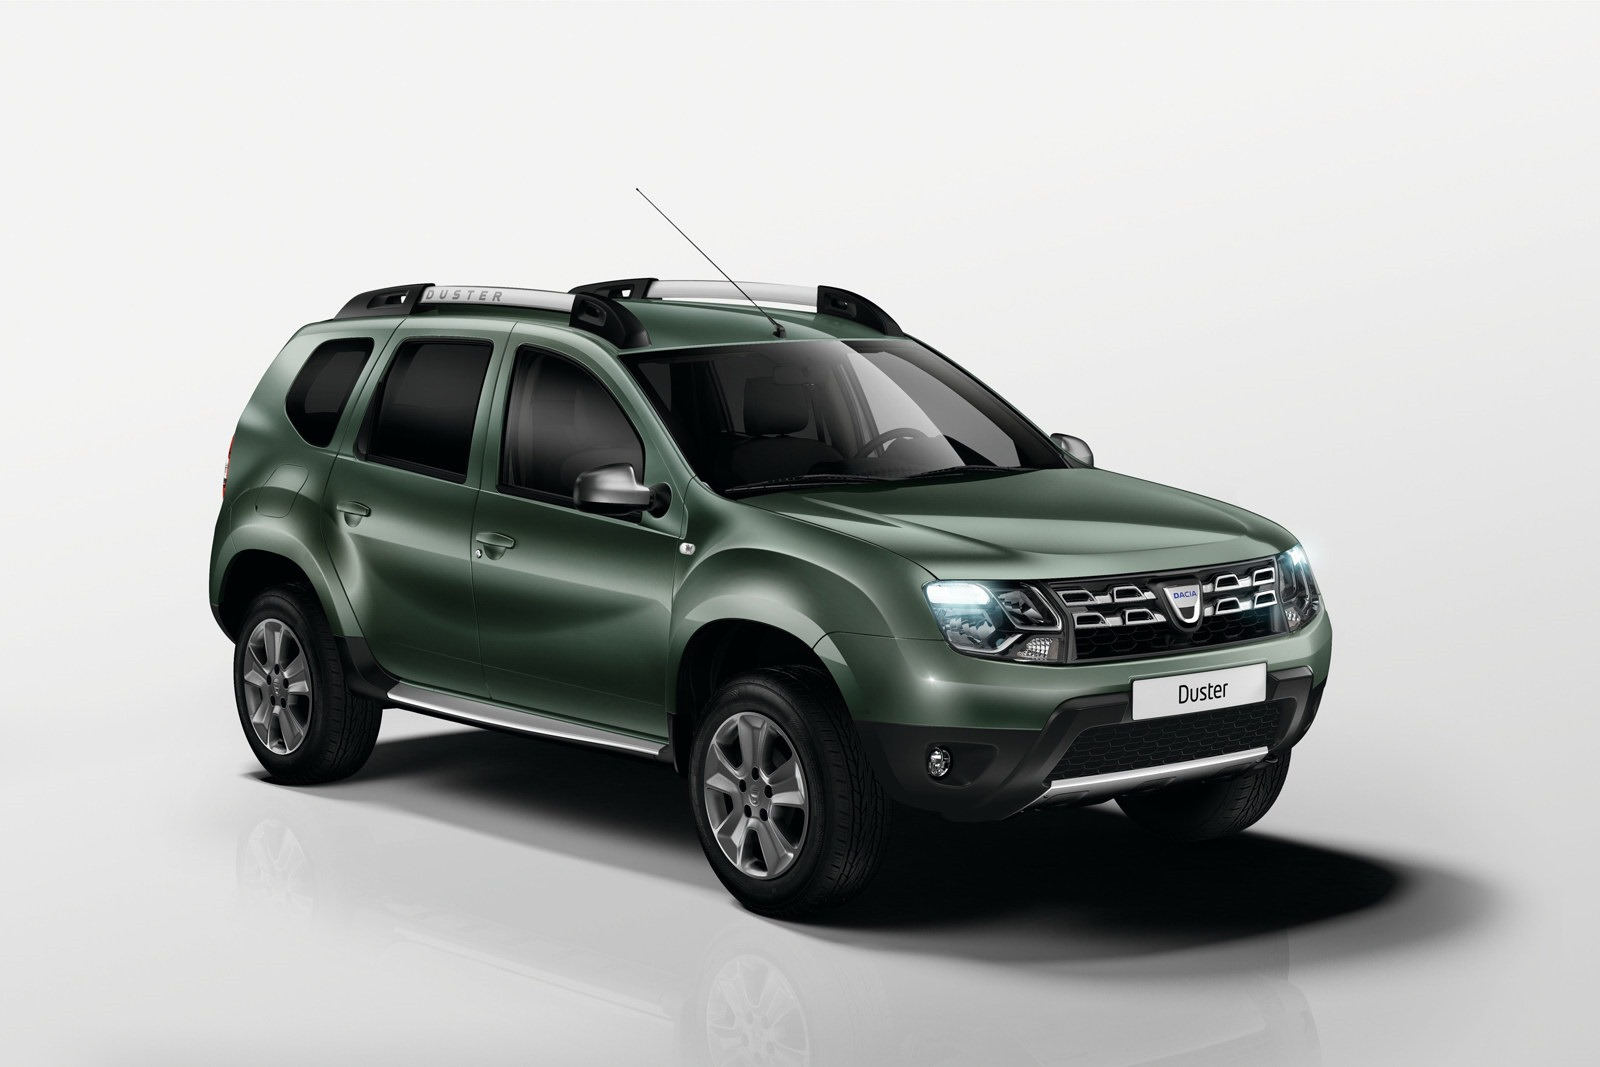 New dacia duster 1 2 tce detailed video autoevolution for Interieur kleuren 2014